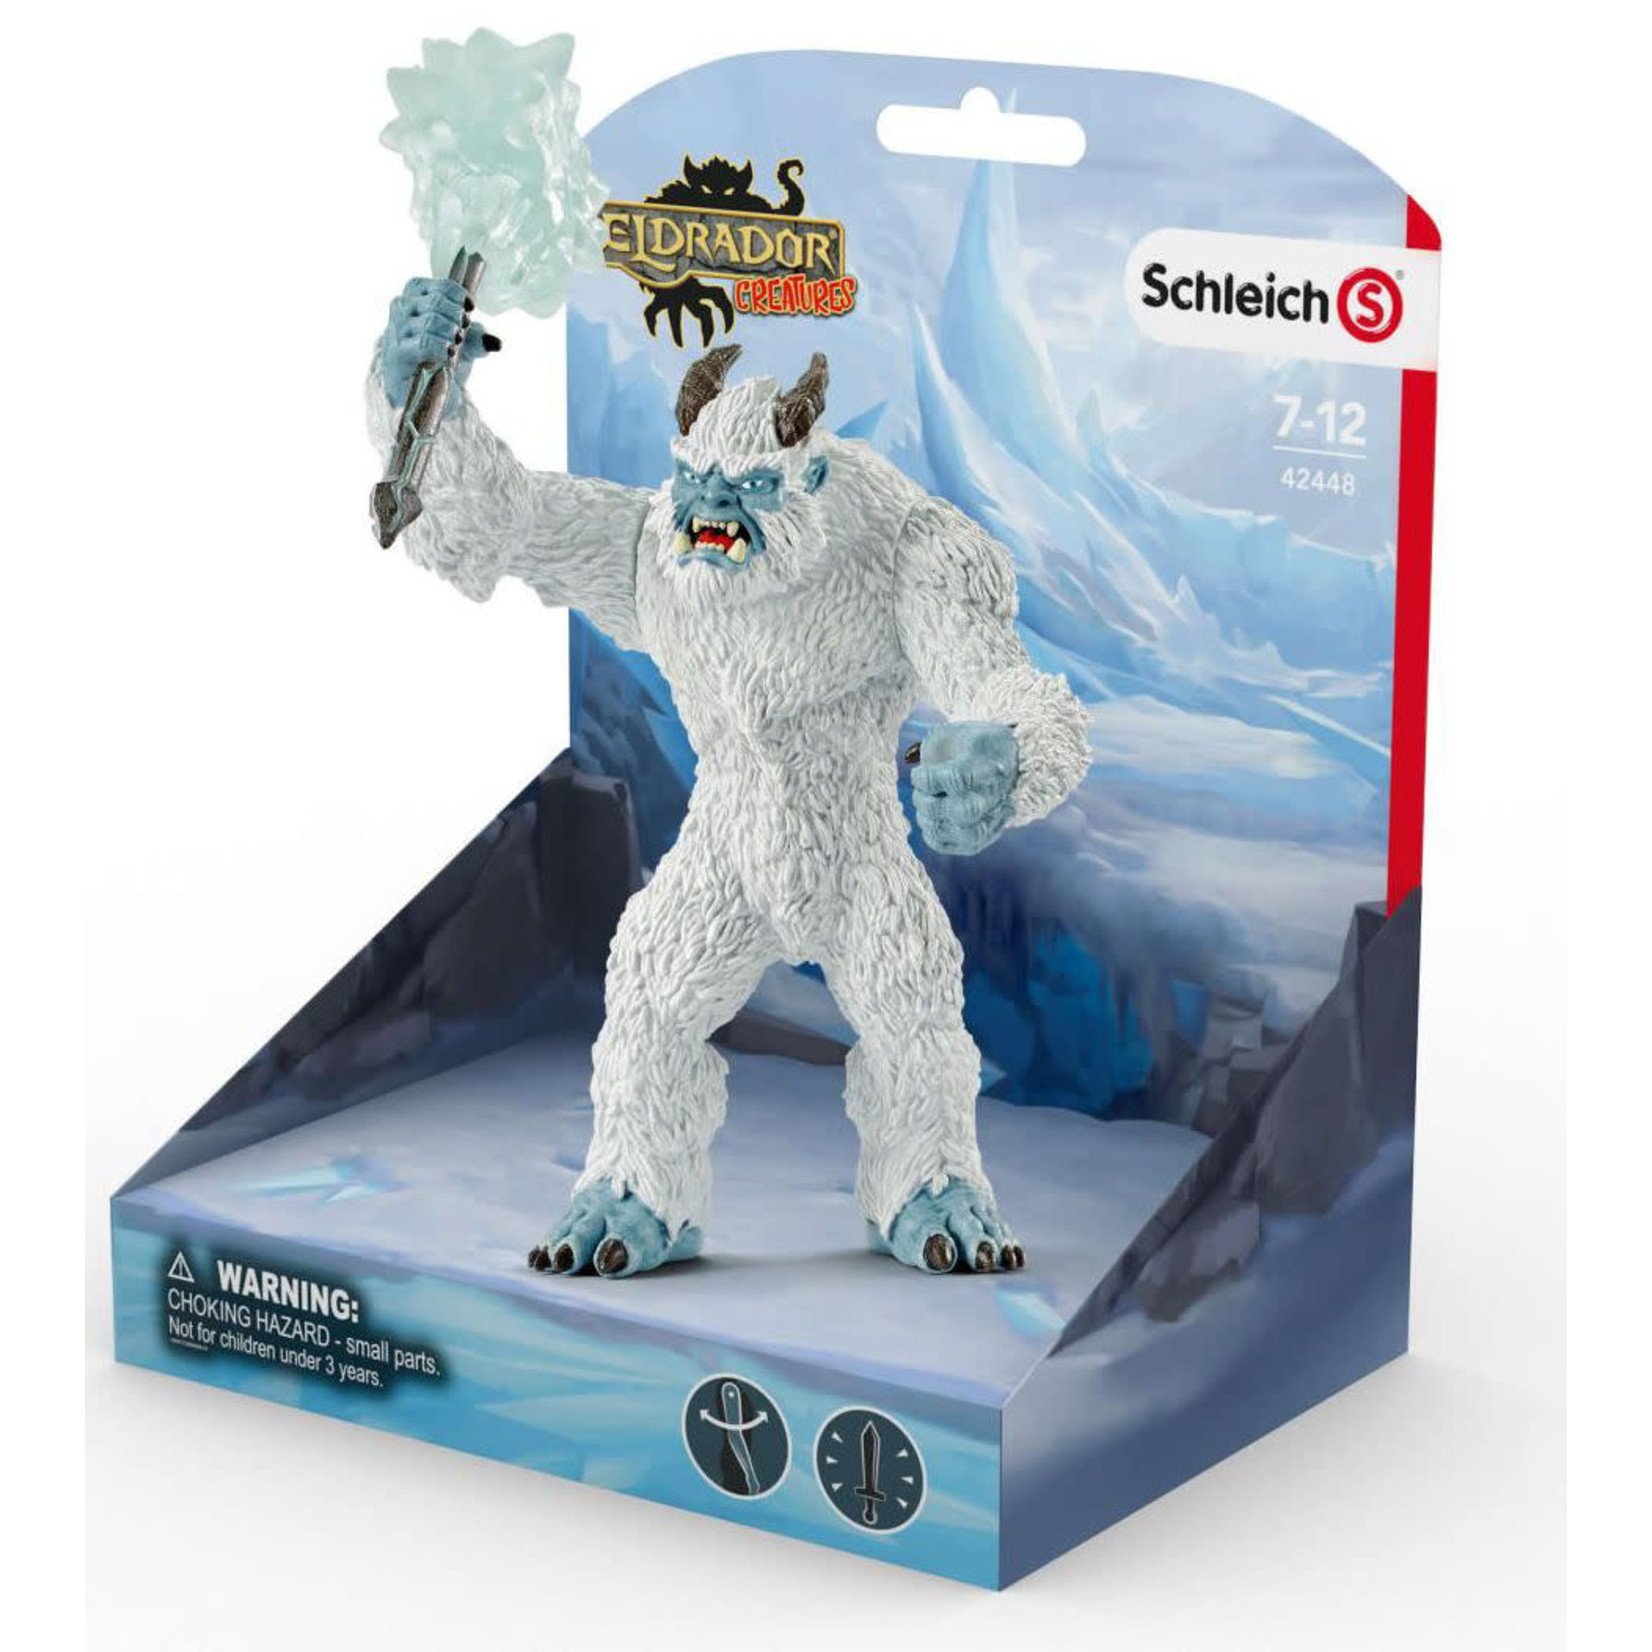 SCHLEICH ICE MONSTER WITH WEAPON